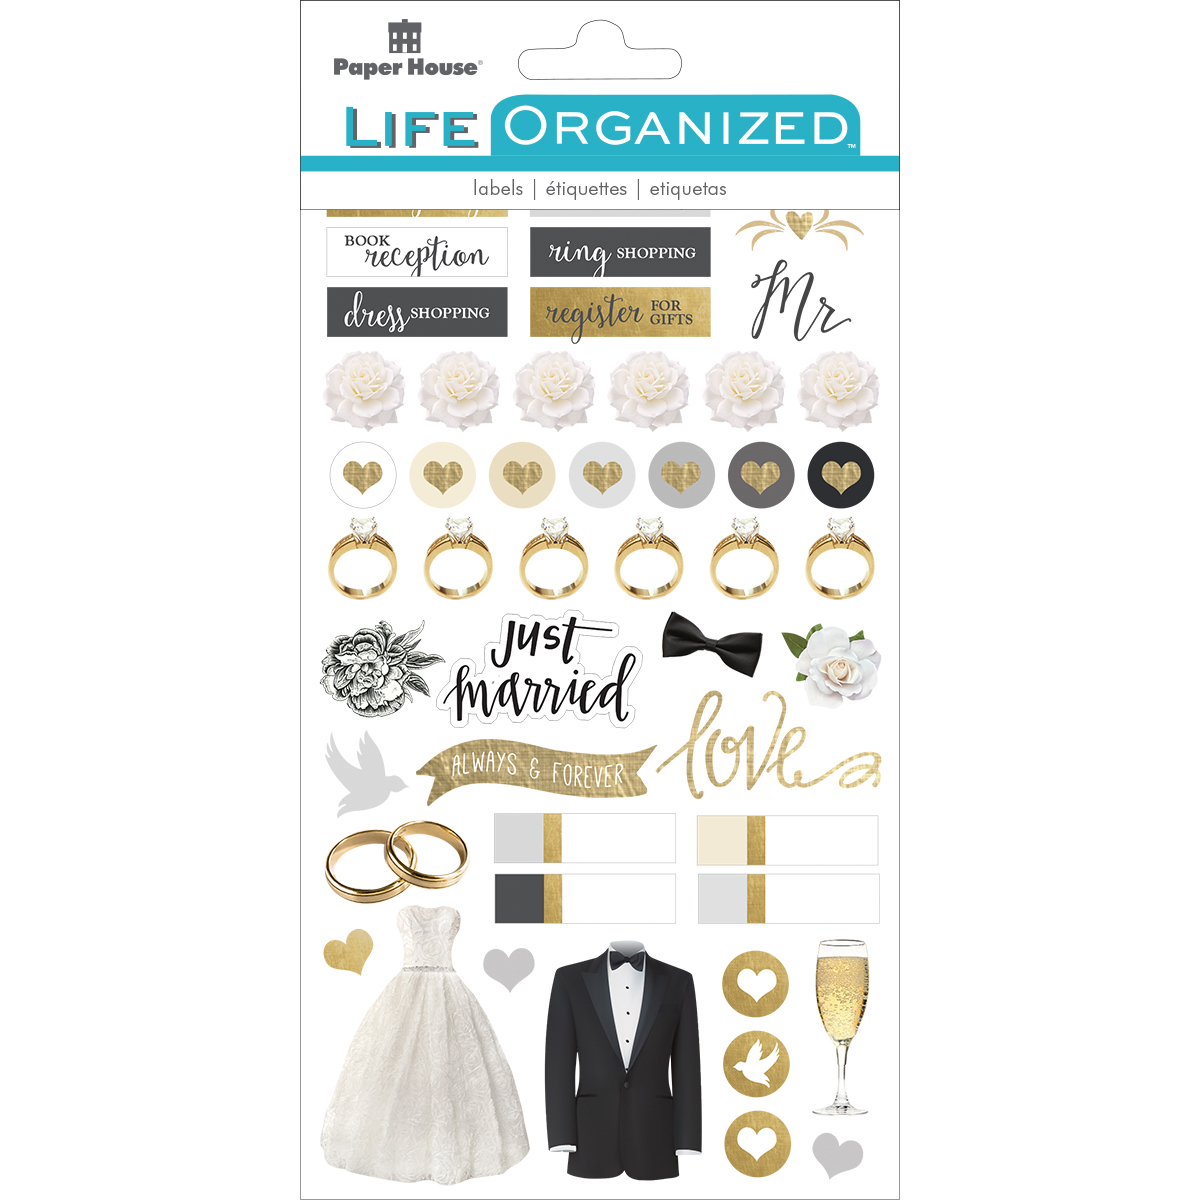 Always & Forever Wedding - Paper House Life Organized Planner Stickers 4.5